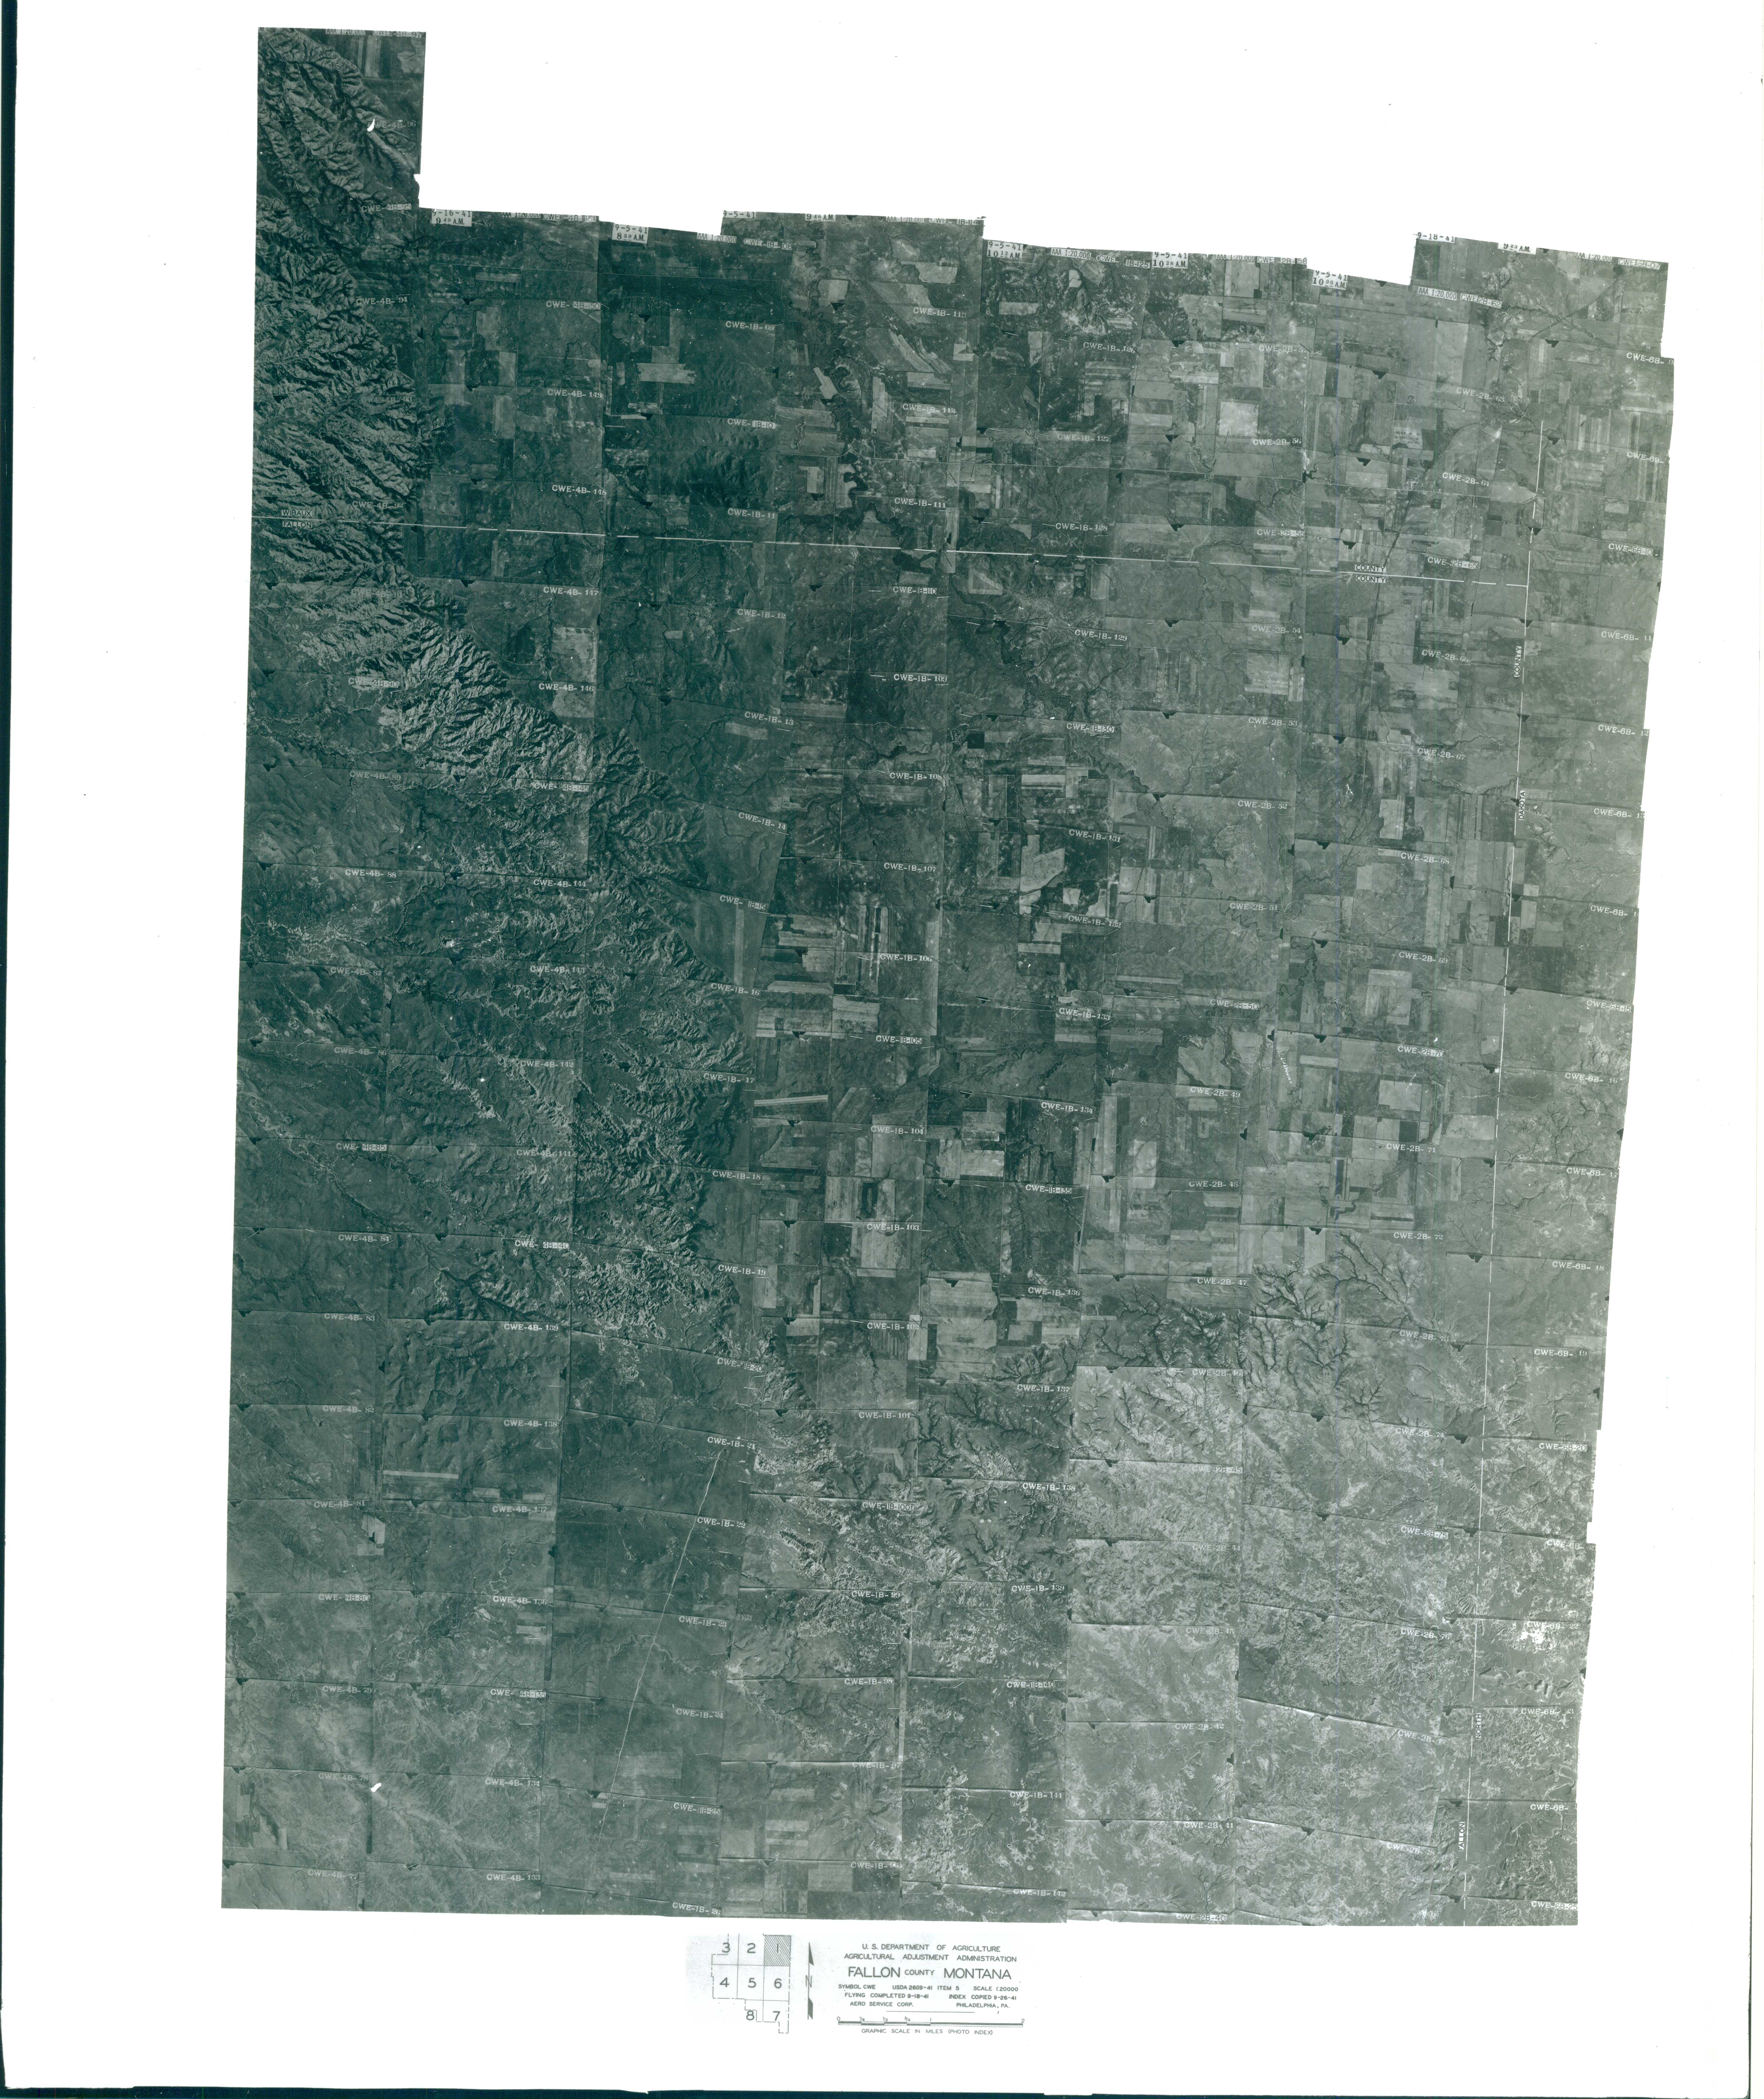 Index to Aerial Photography of Fallon County, Montana 1